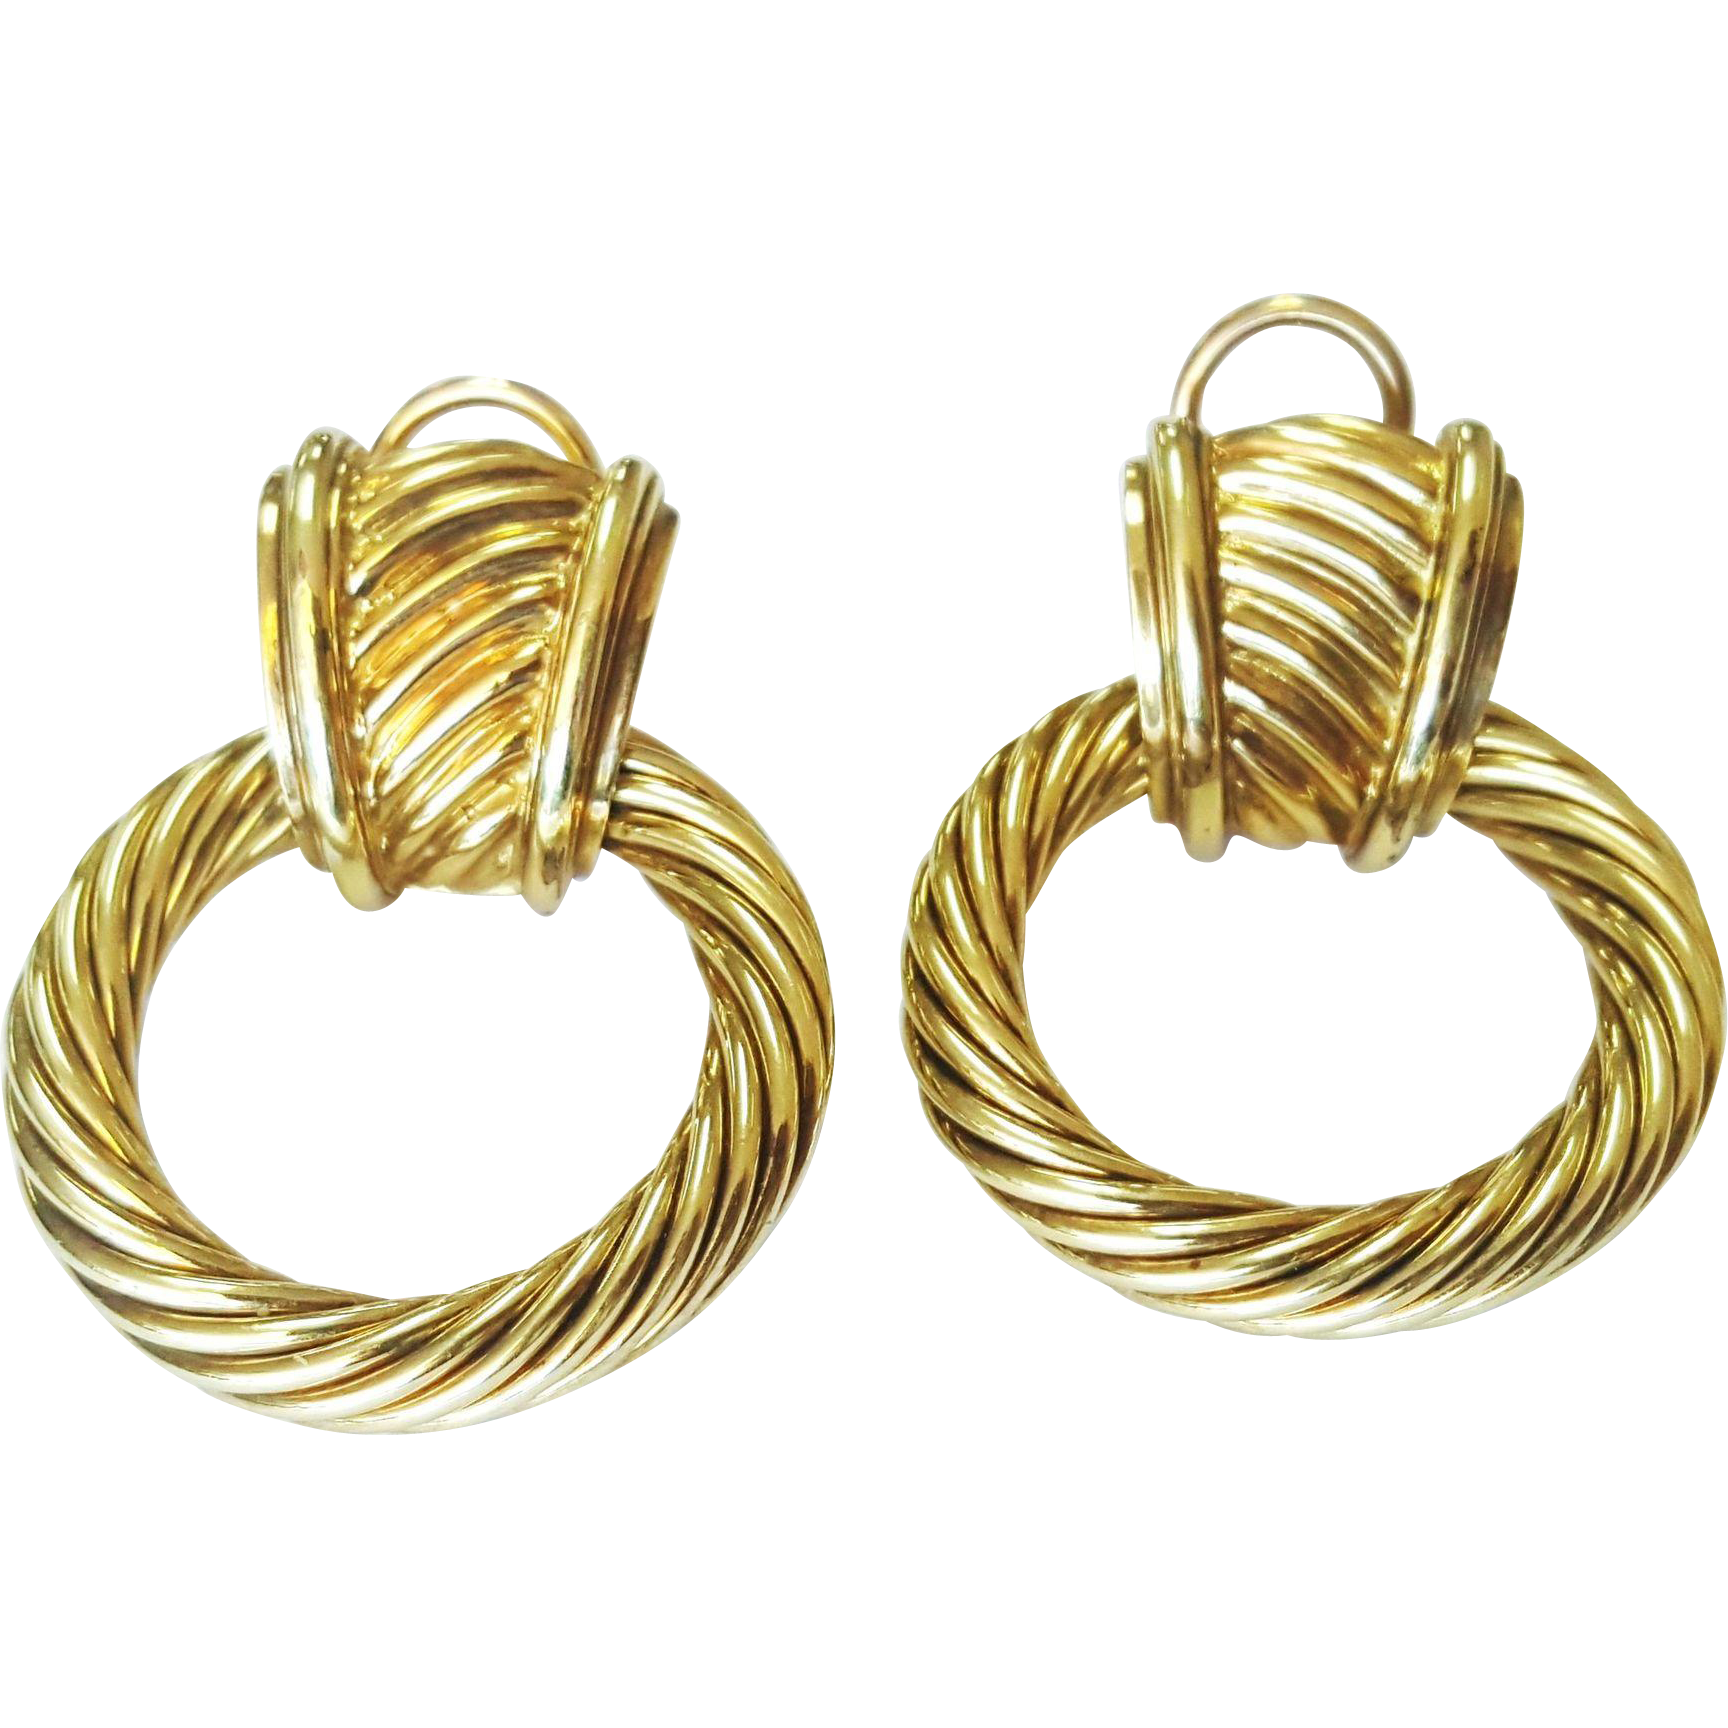 David Yurman 14 Karat Yellow Gold Door Knocker Earrings Sold Ruby Lane